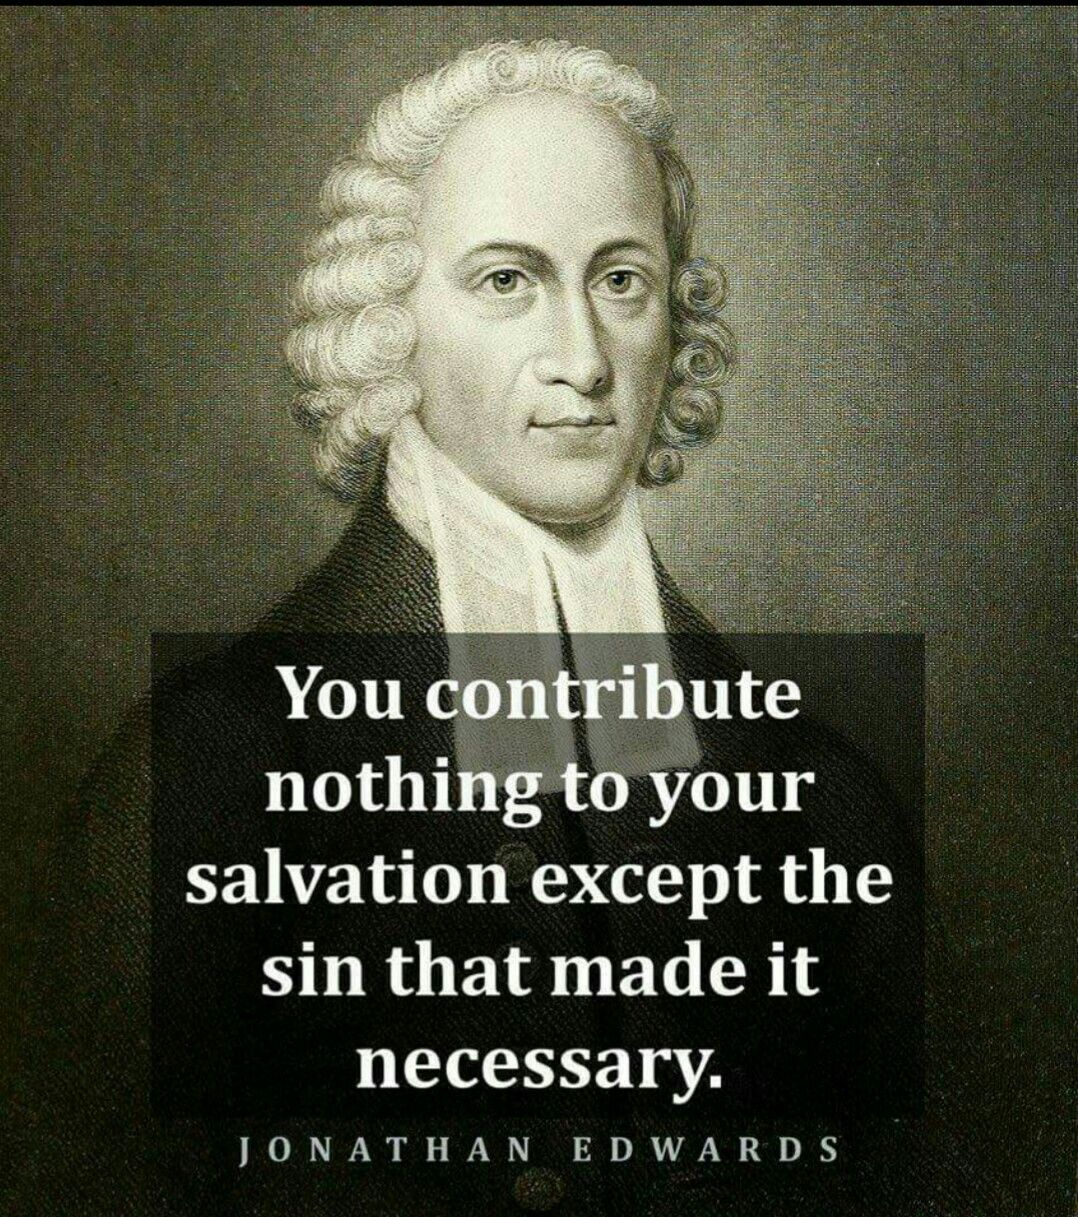 Jonathan Edwards Quotes You Contribute Nothing To Your Salvation Except The Sin That Made